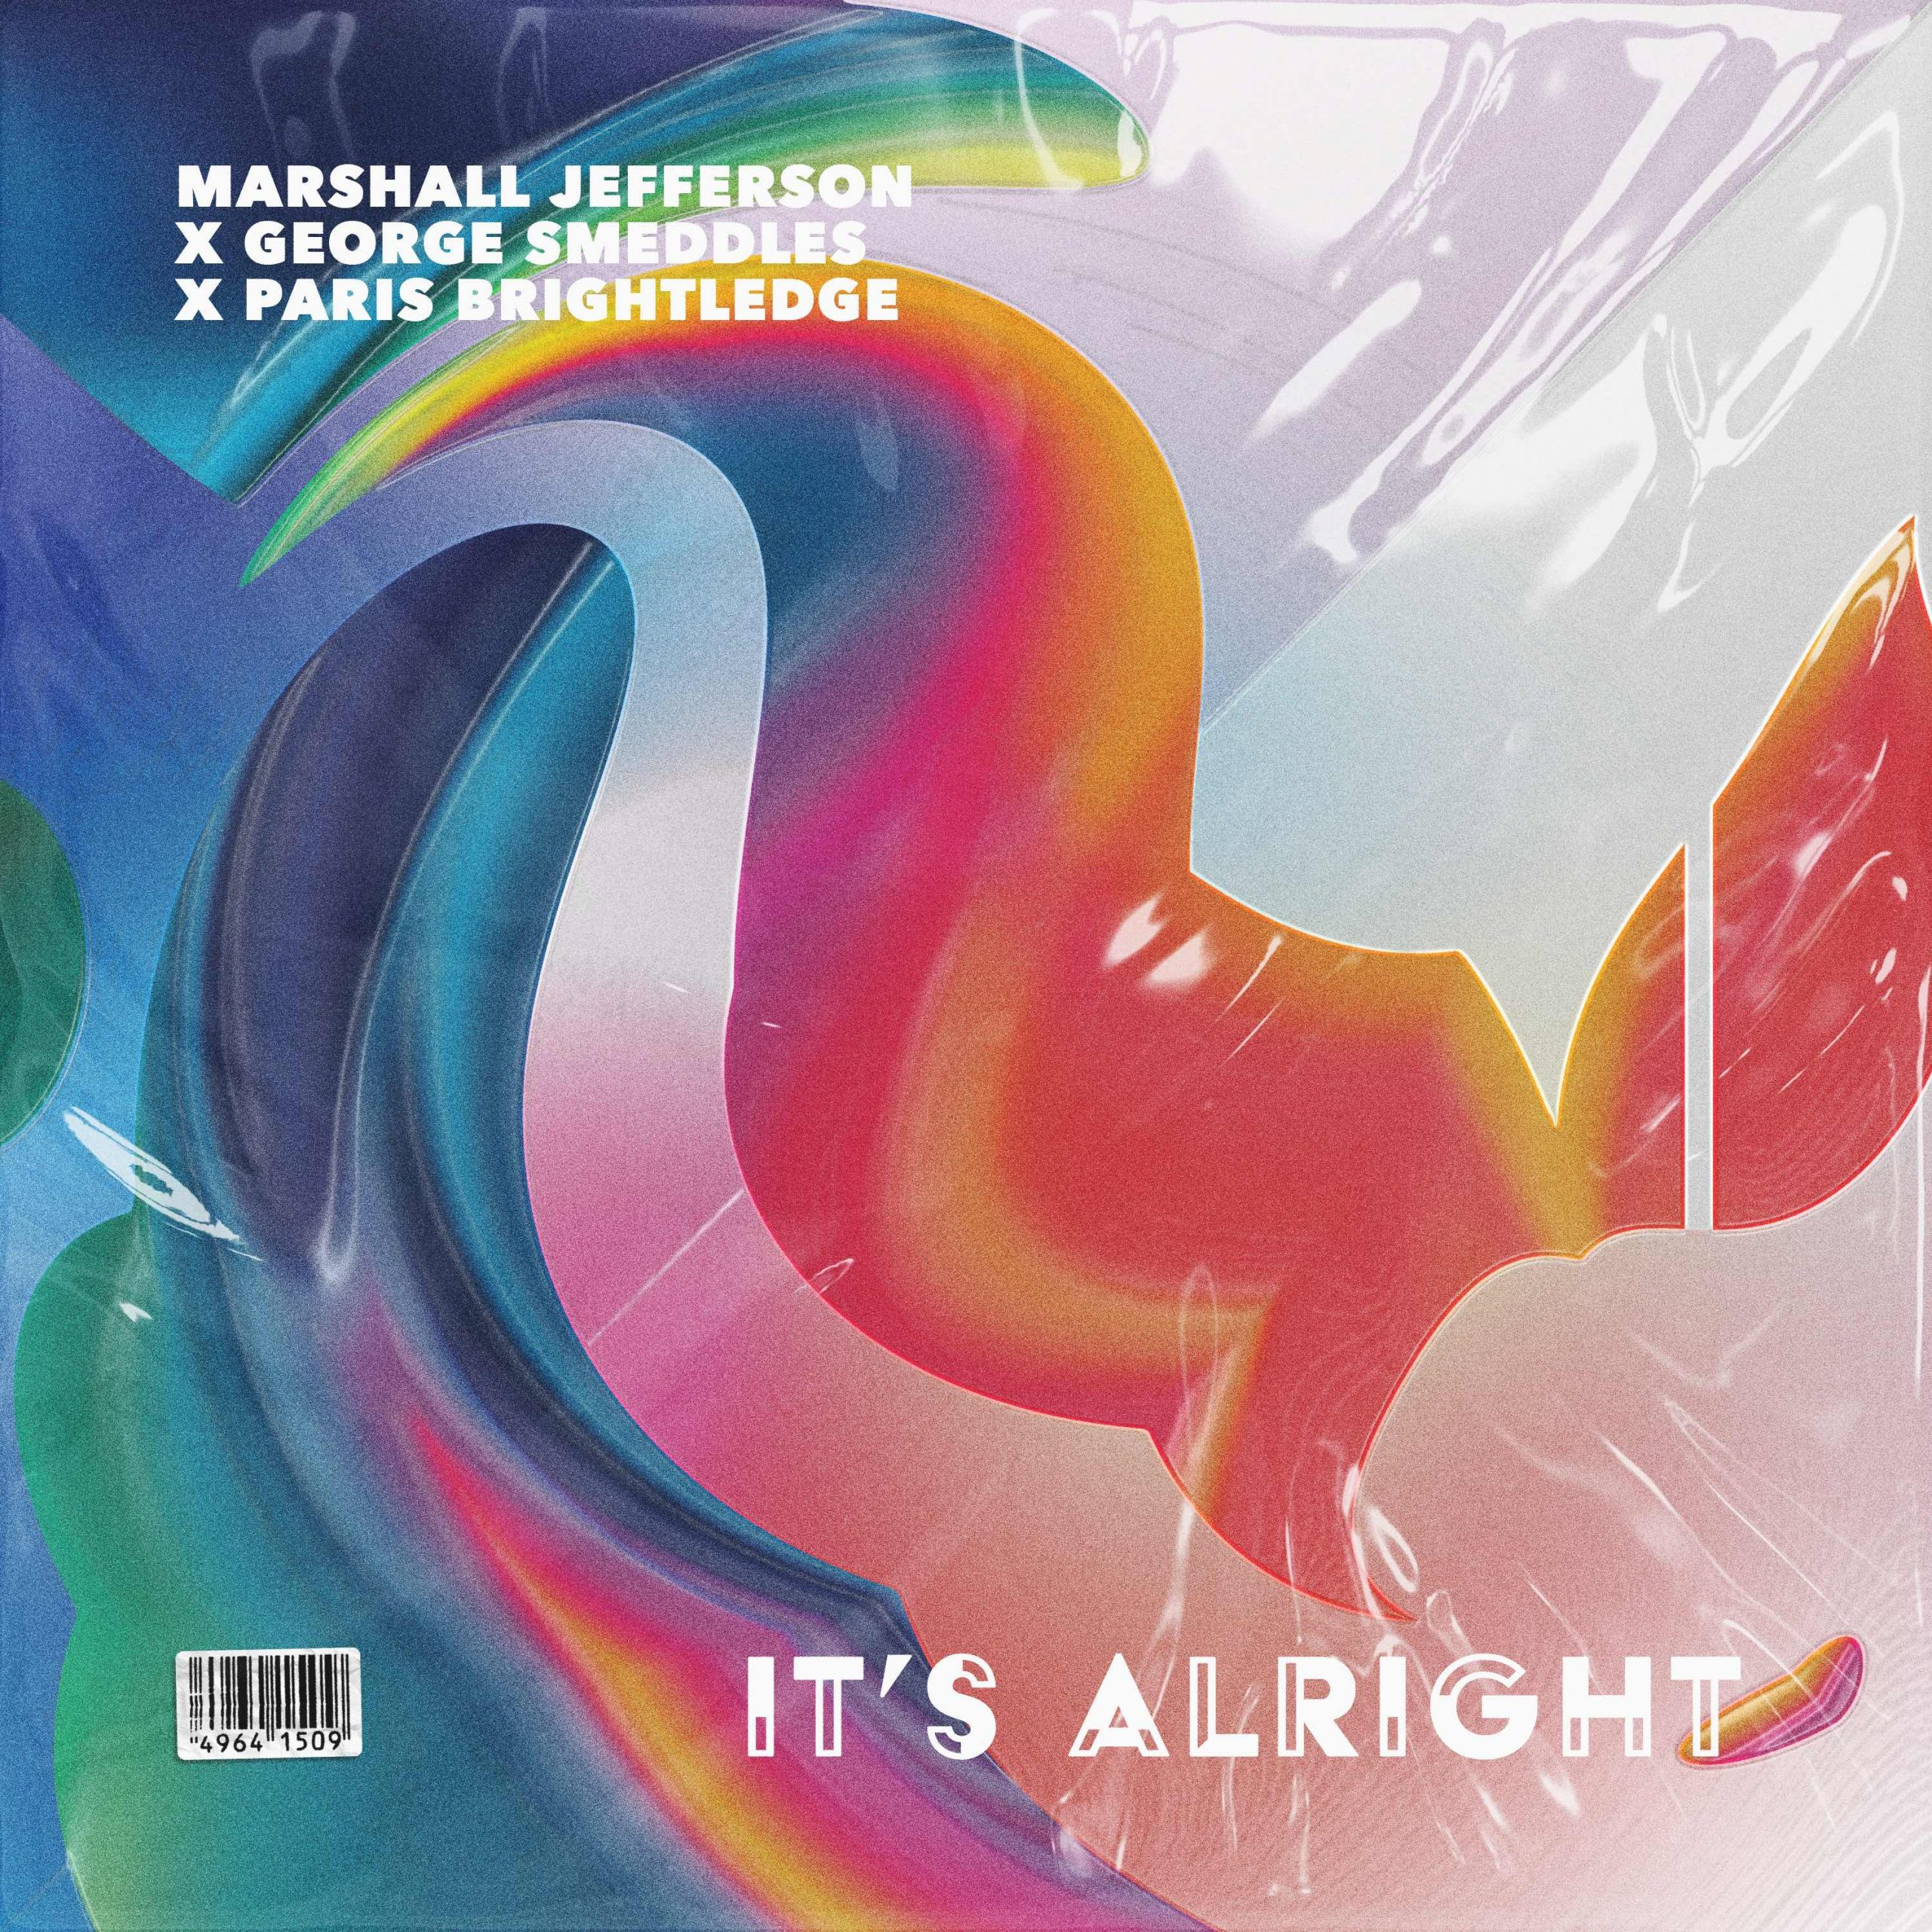 Marshall Jefferson, George Smeddles & Paris Brightledge link up on new  single 'It's Alright' – Music is 4 Lovers